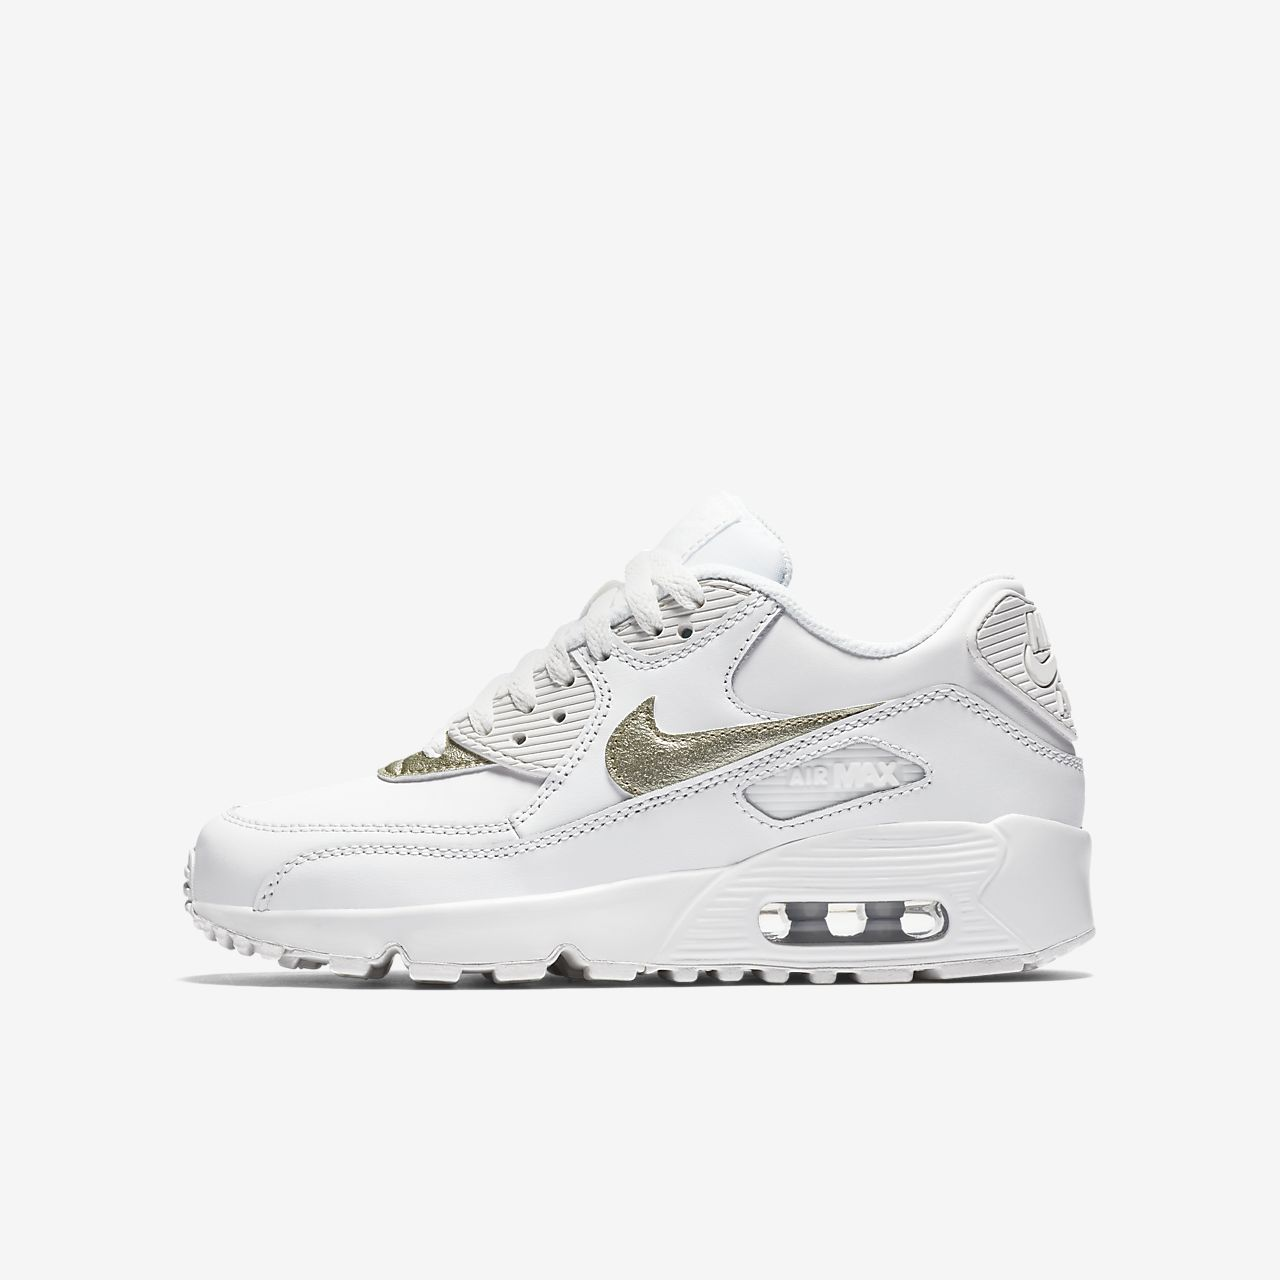 new concept cd8fd 3035a Nike Air Max 90 Leather Schuh für ältere Kinder ...